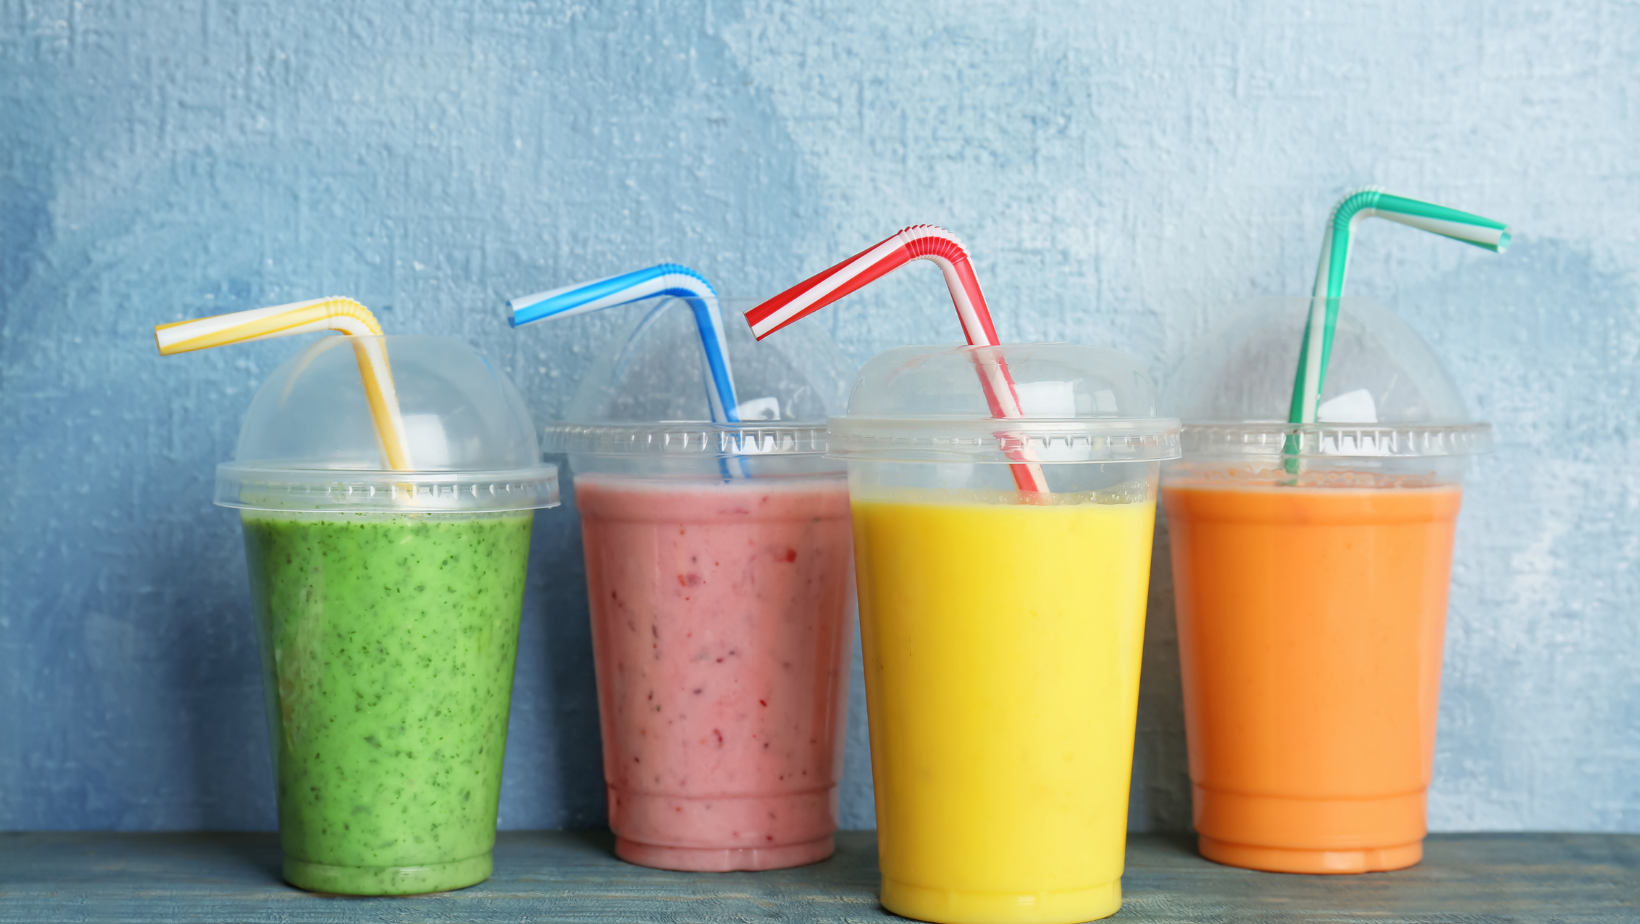 A Resource on How to Add Smoothies to the School Menu